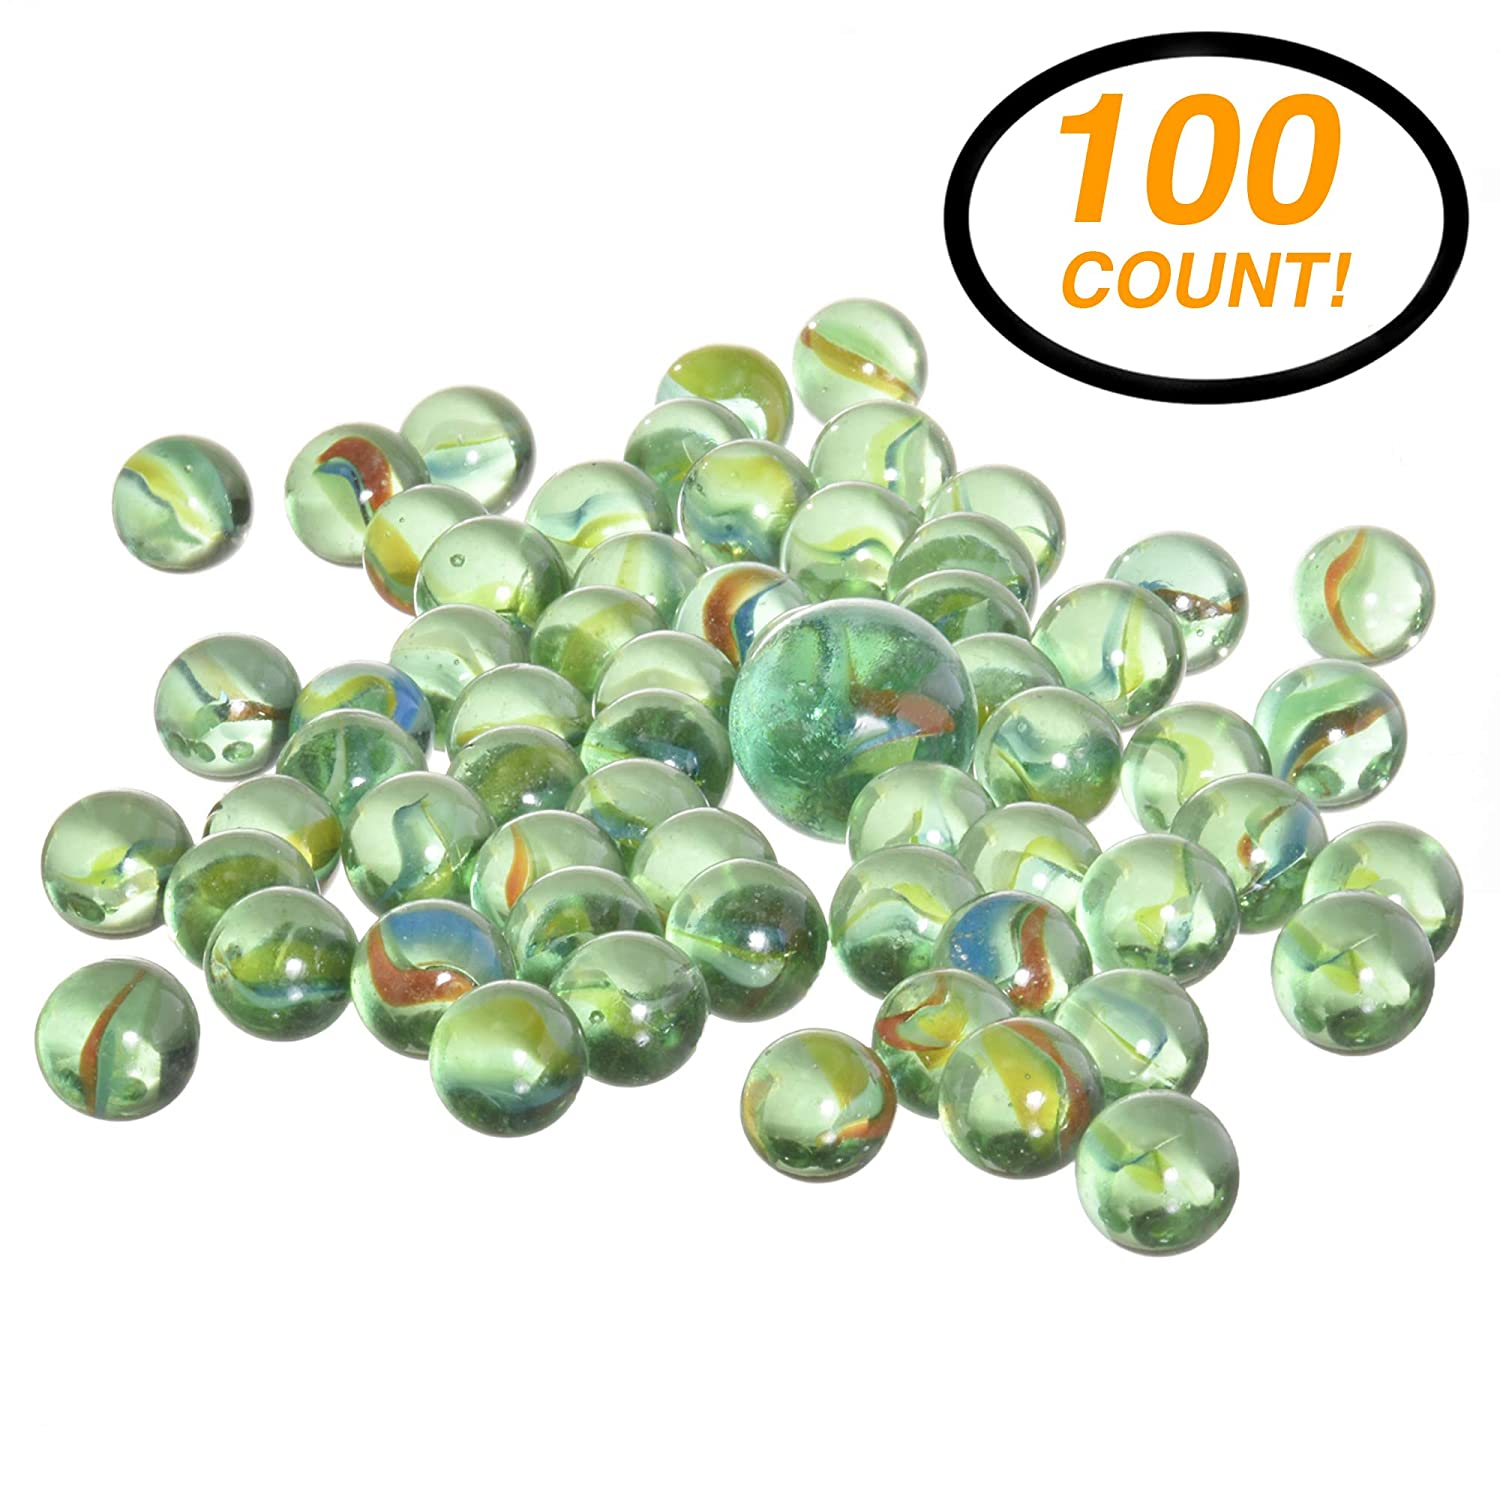 RamPro 100 Pieces Glass Marbles Marble Balls Glass Mega Marbles Toy Shooter Marbles for Marbles Game Classic Marbles Table Scatter Colored Glass Marbles Beautiful Marbles Toys